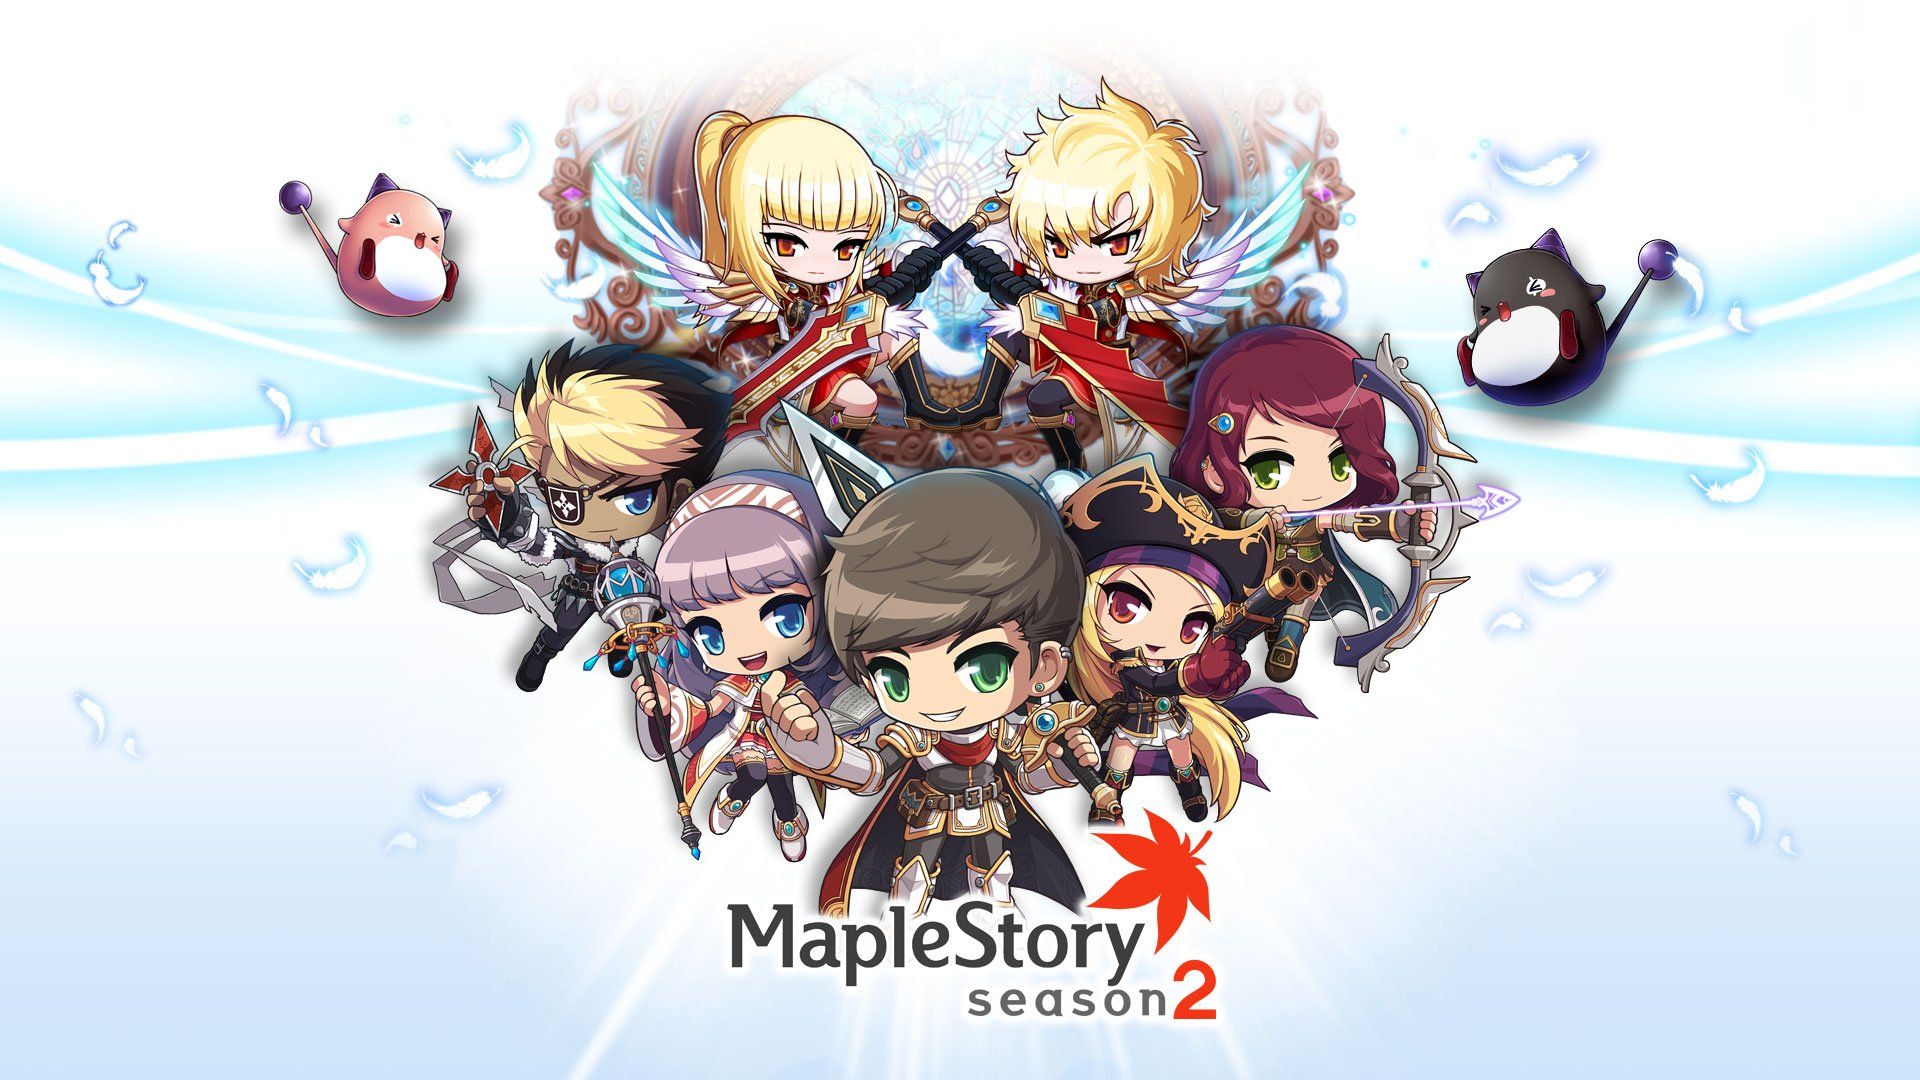 Maplestory Mmo Online Rpg Scrolling Fantasy 2 D Family Maple Story Wallpaper 19x1080 Wallpaperup